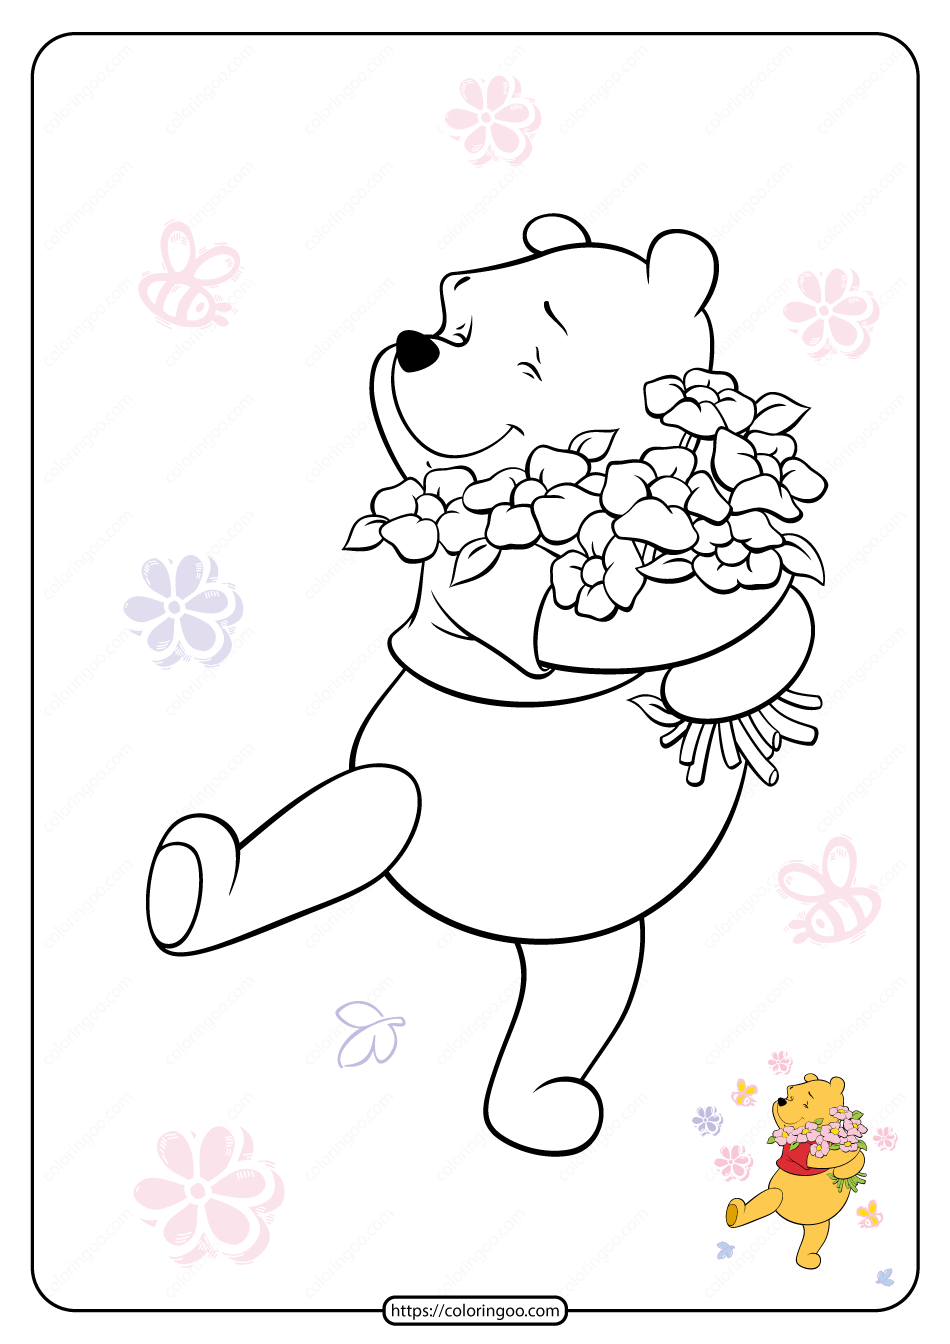 Printable Winnie the Pooh Pdf Coloring Pages 11